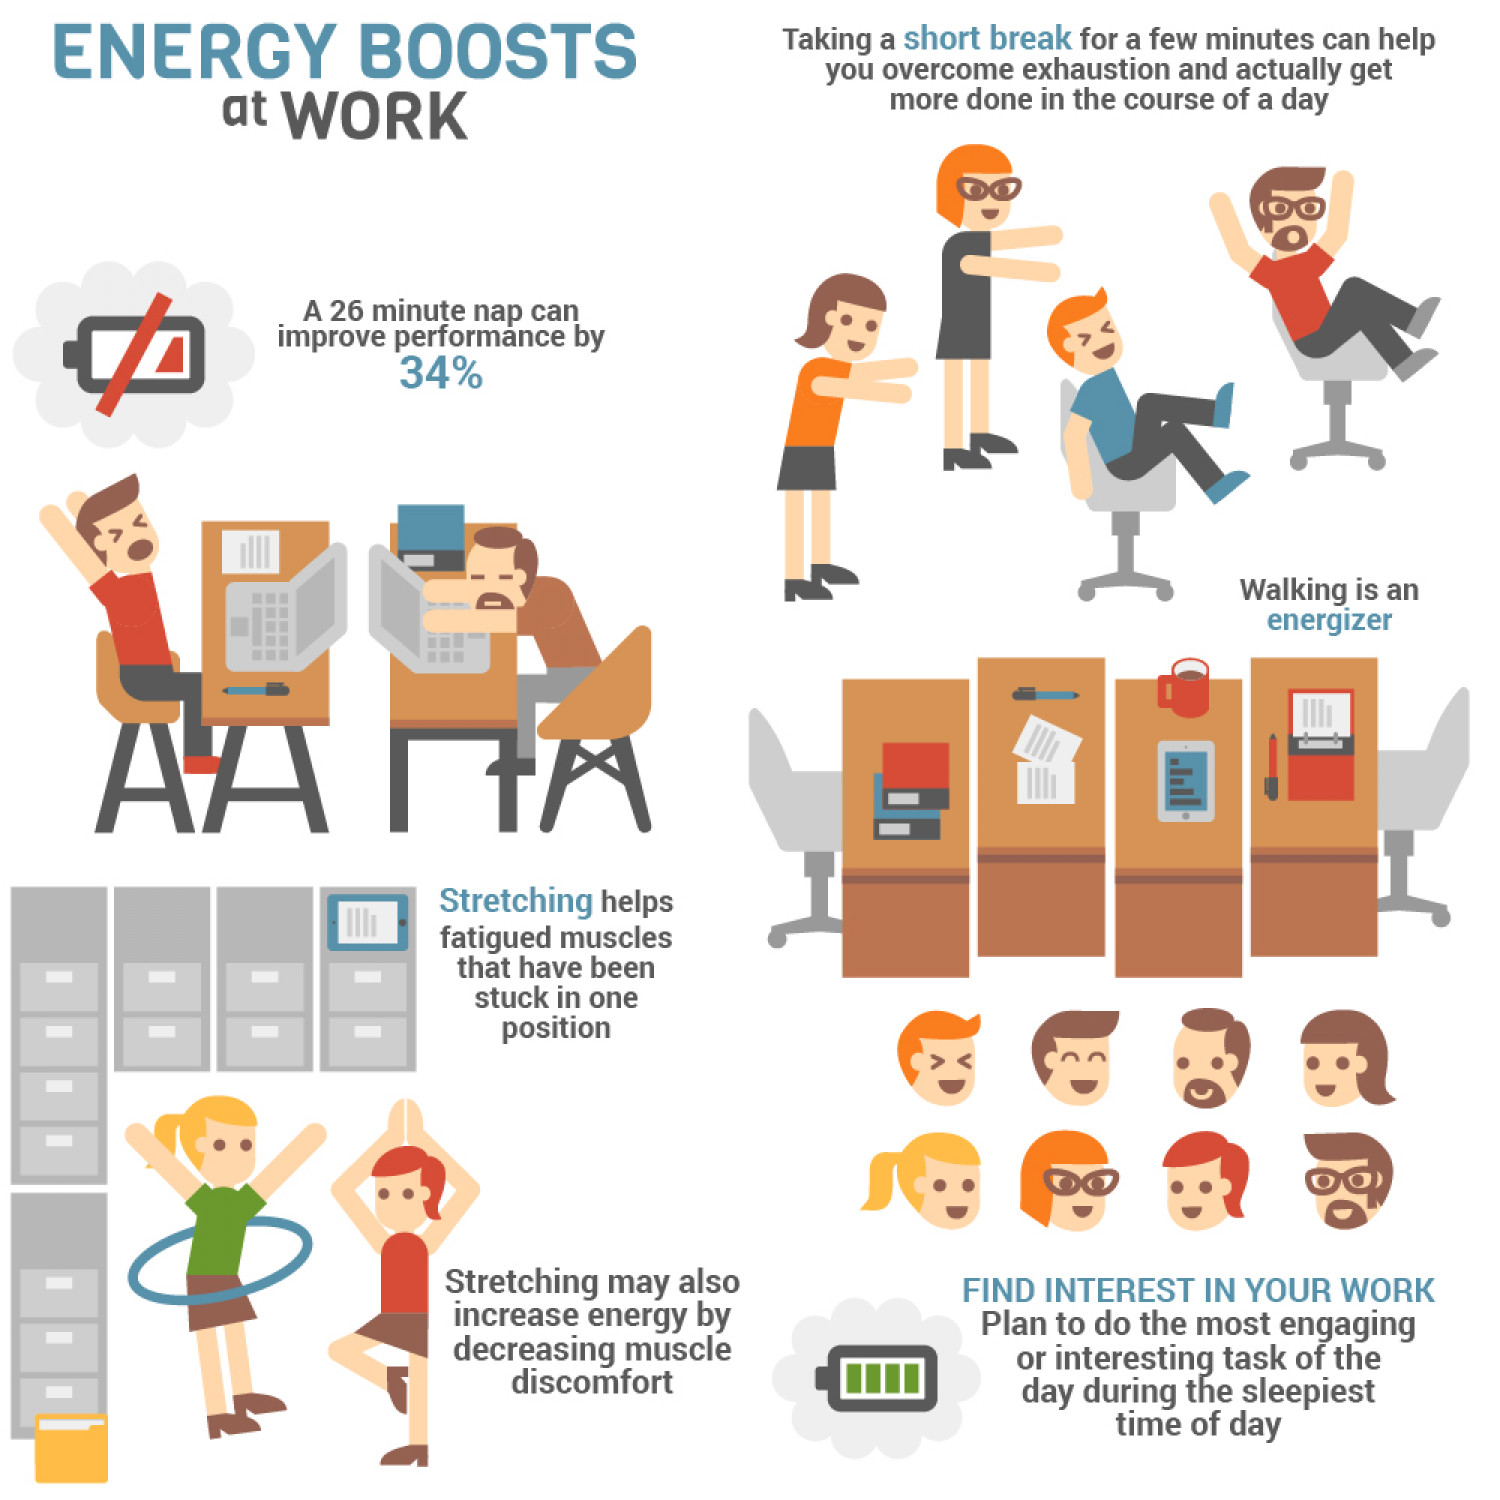 Energy Boosts at Work Infographic